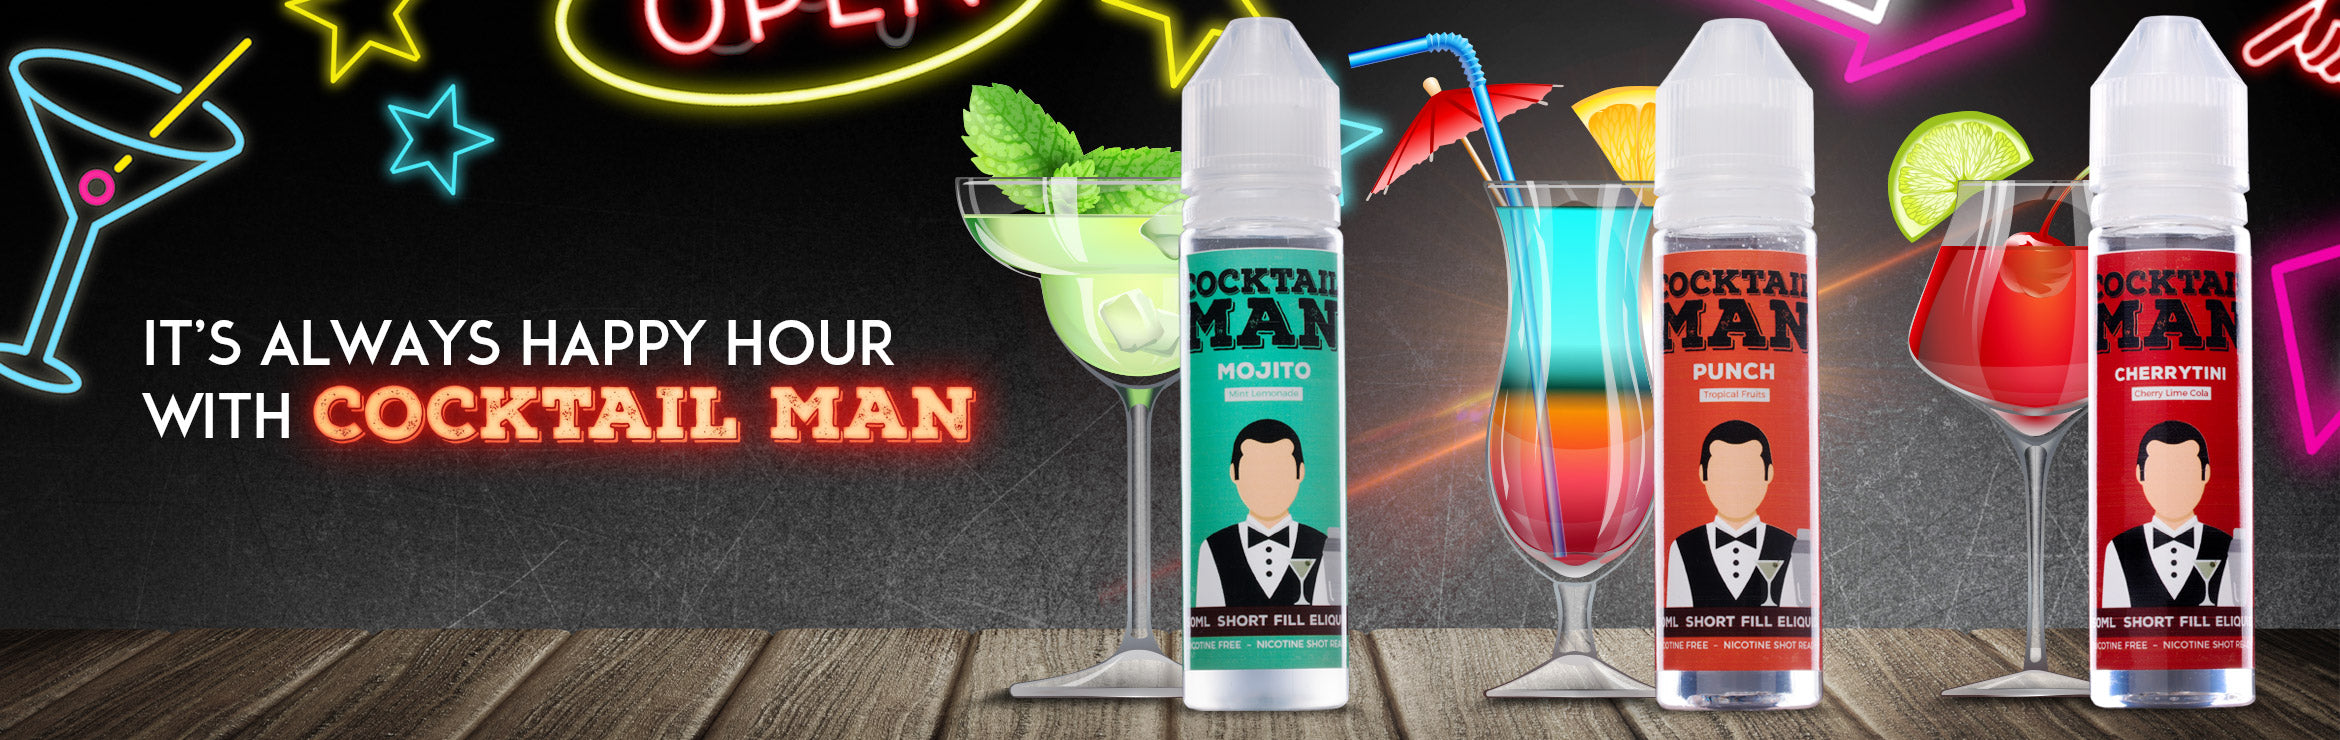 Cocktail Man - Happy Hour St Patrick's Day Blog Banner